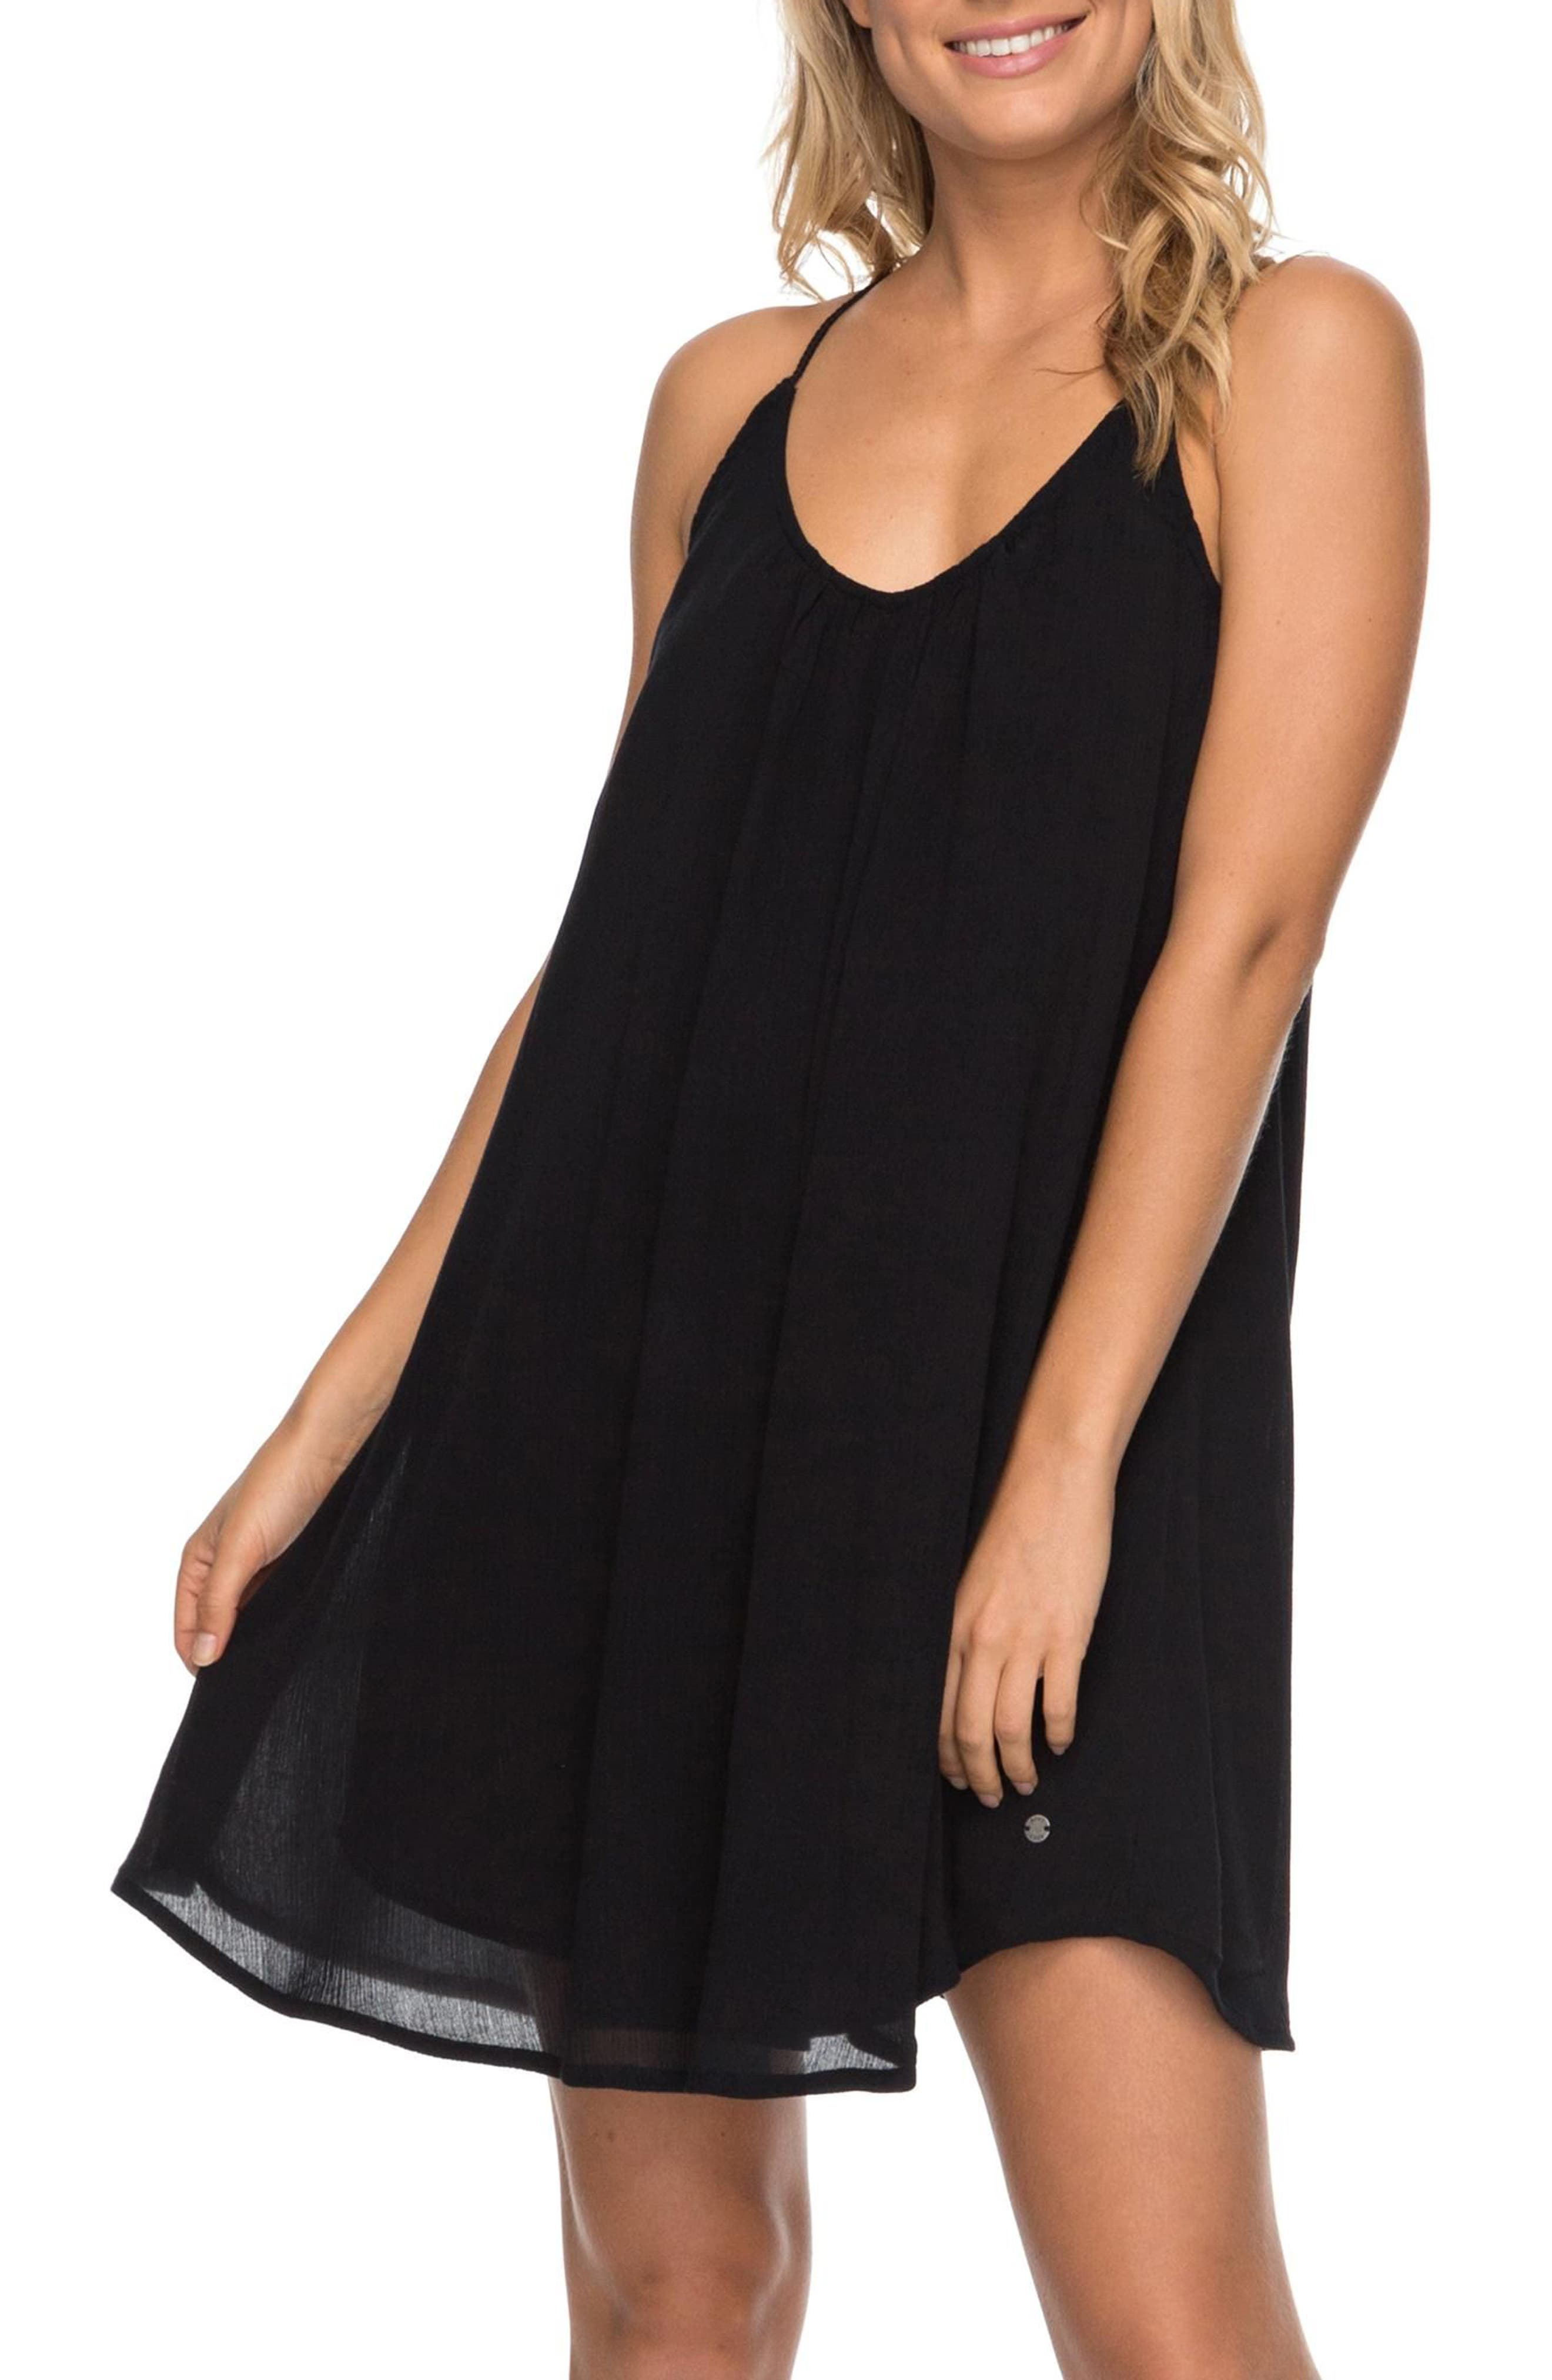 Great Intentions Trapeze Dress,                             Alternate thumbnail 3, color,                             021